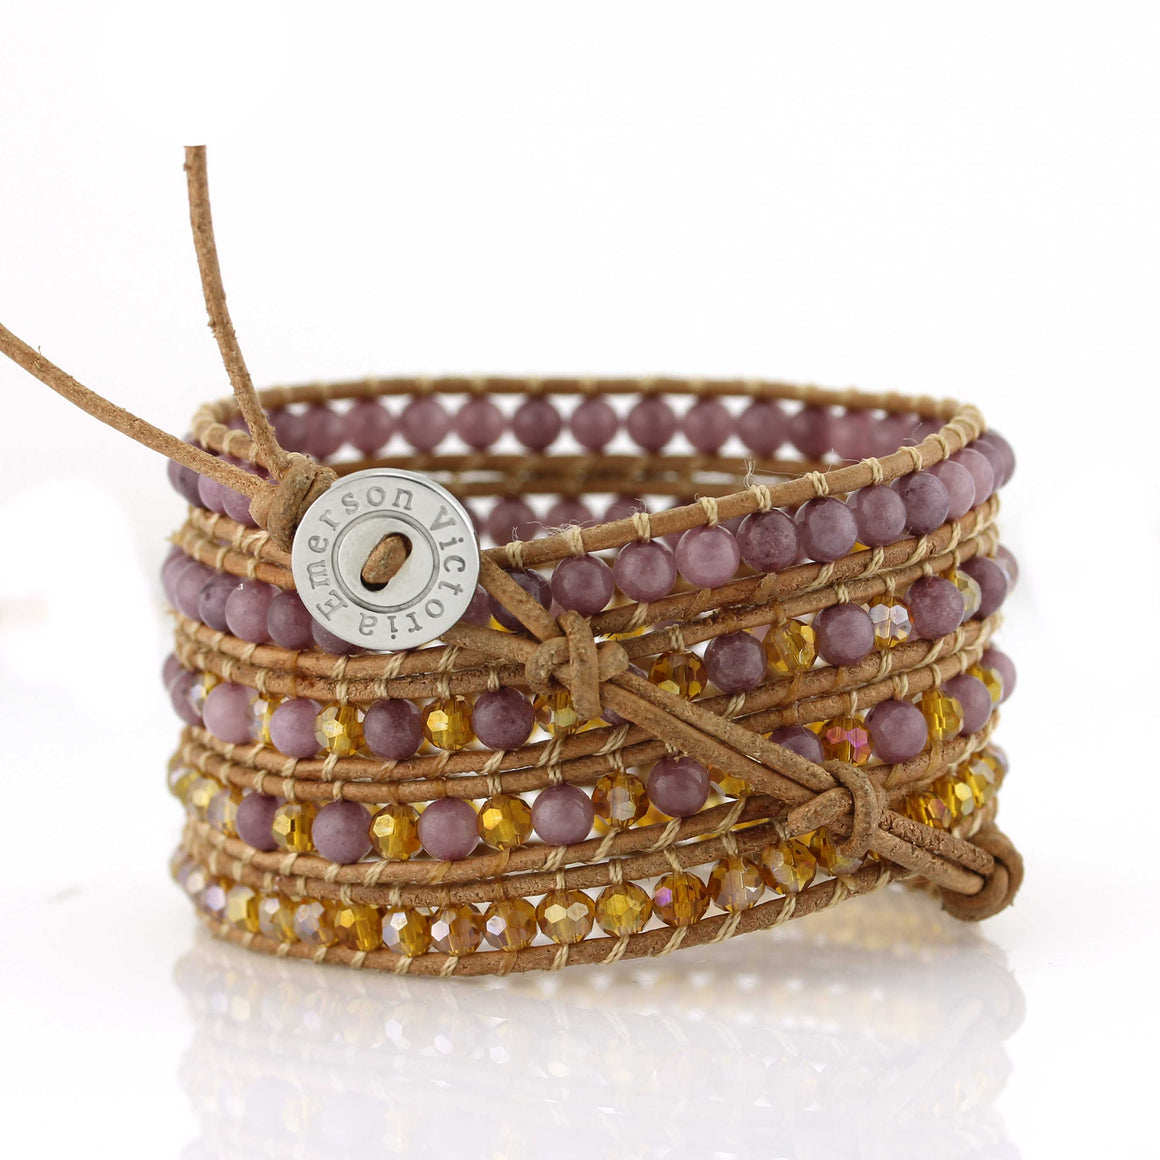 Purple beads and amber crystals on natural